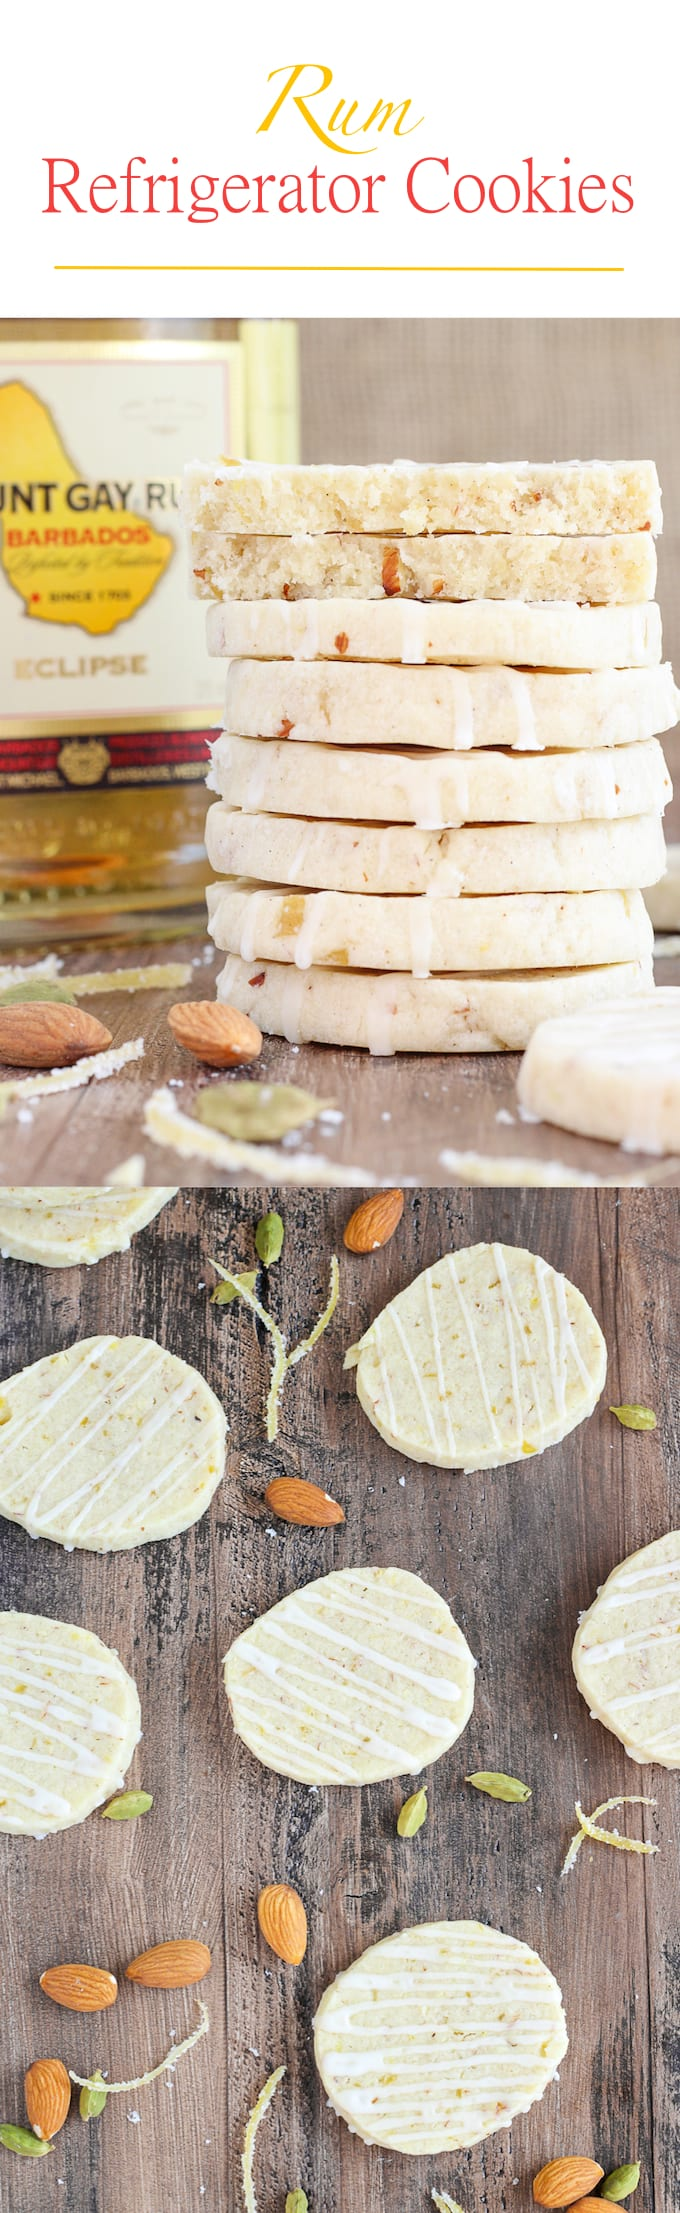 Rum Refrigerator Cookies: Soft, chewy and moist – these cookies' cardamom and citrus notes will positively brighten your holidays. A little nuttiness from the almonds rounds out these absolutely sensational cookies.